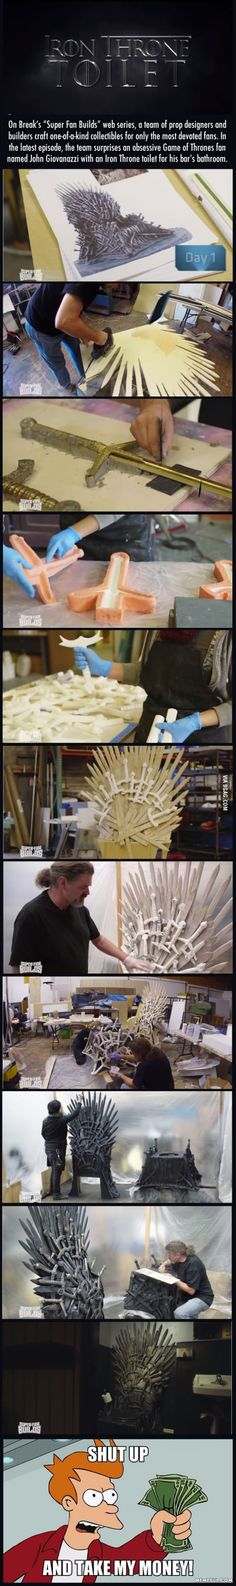 The Iron Throne Toilet - Shut Up and Take My Money!